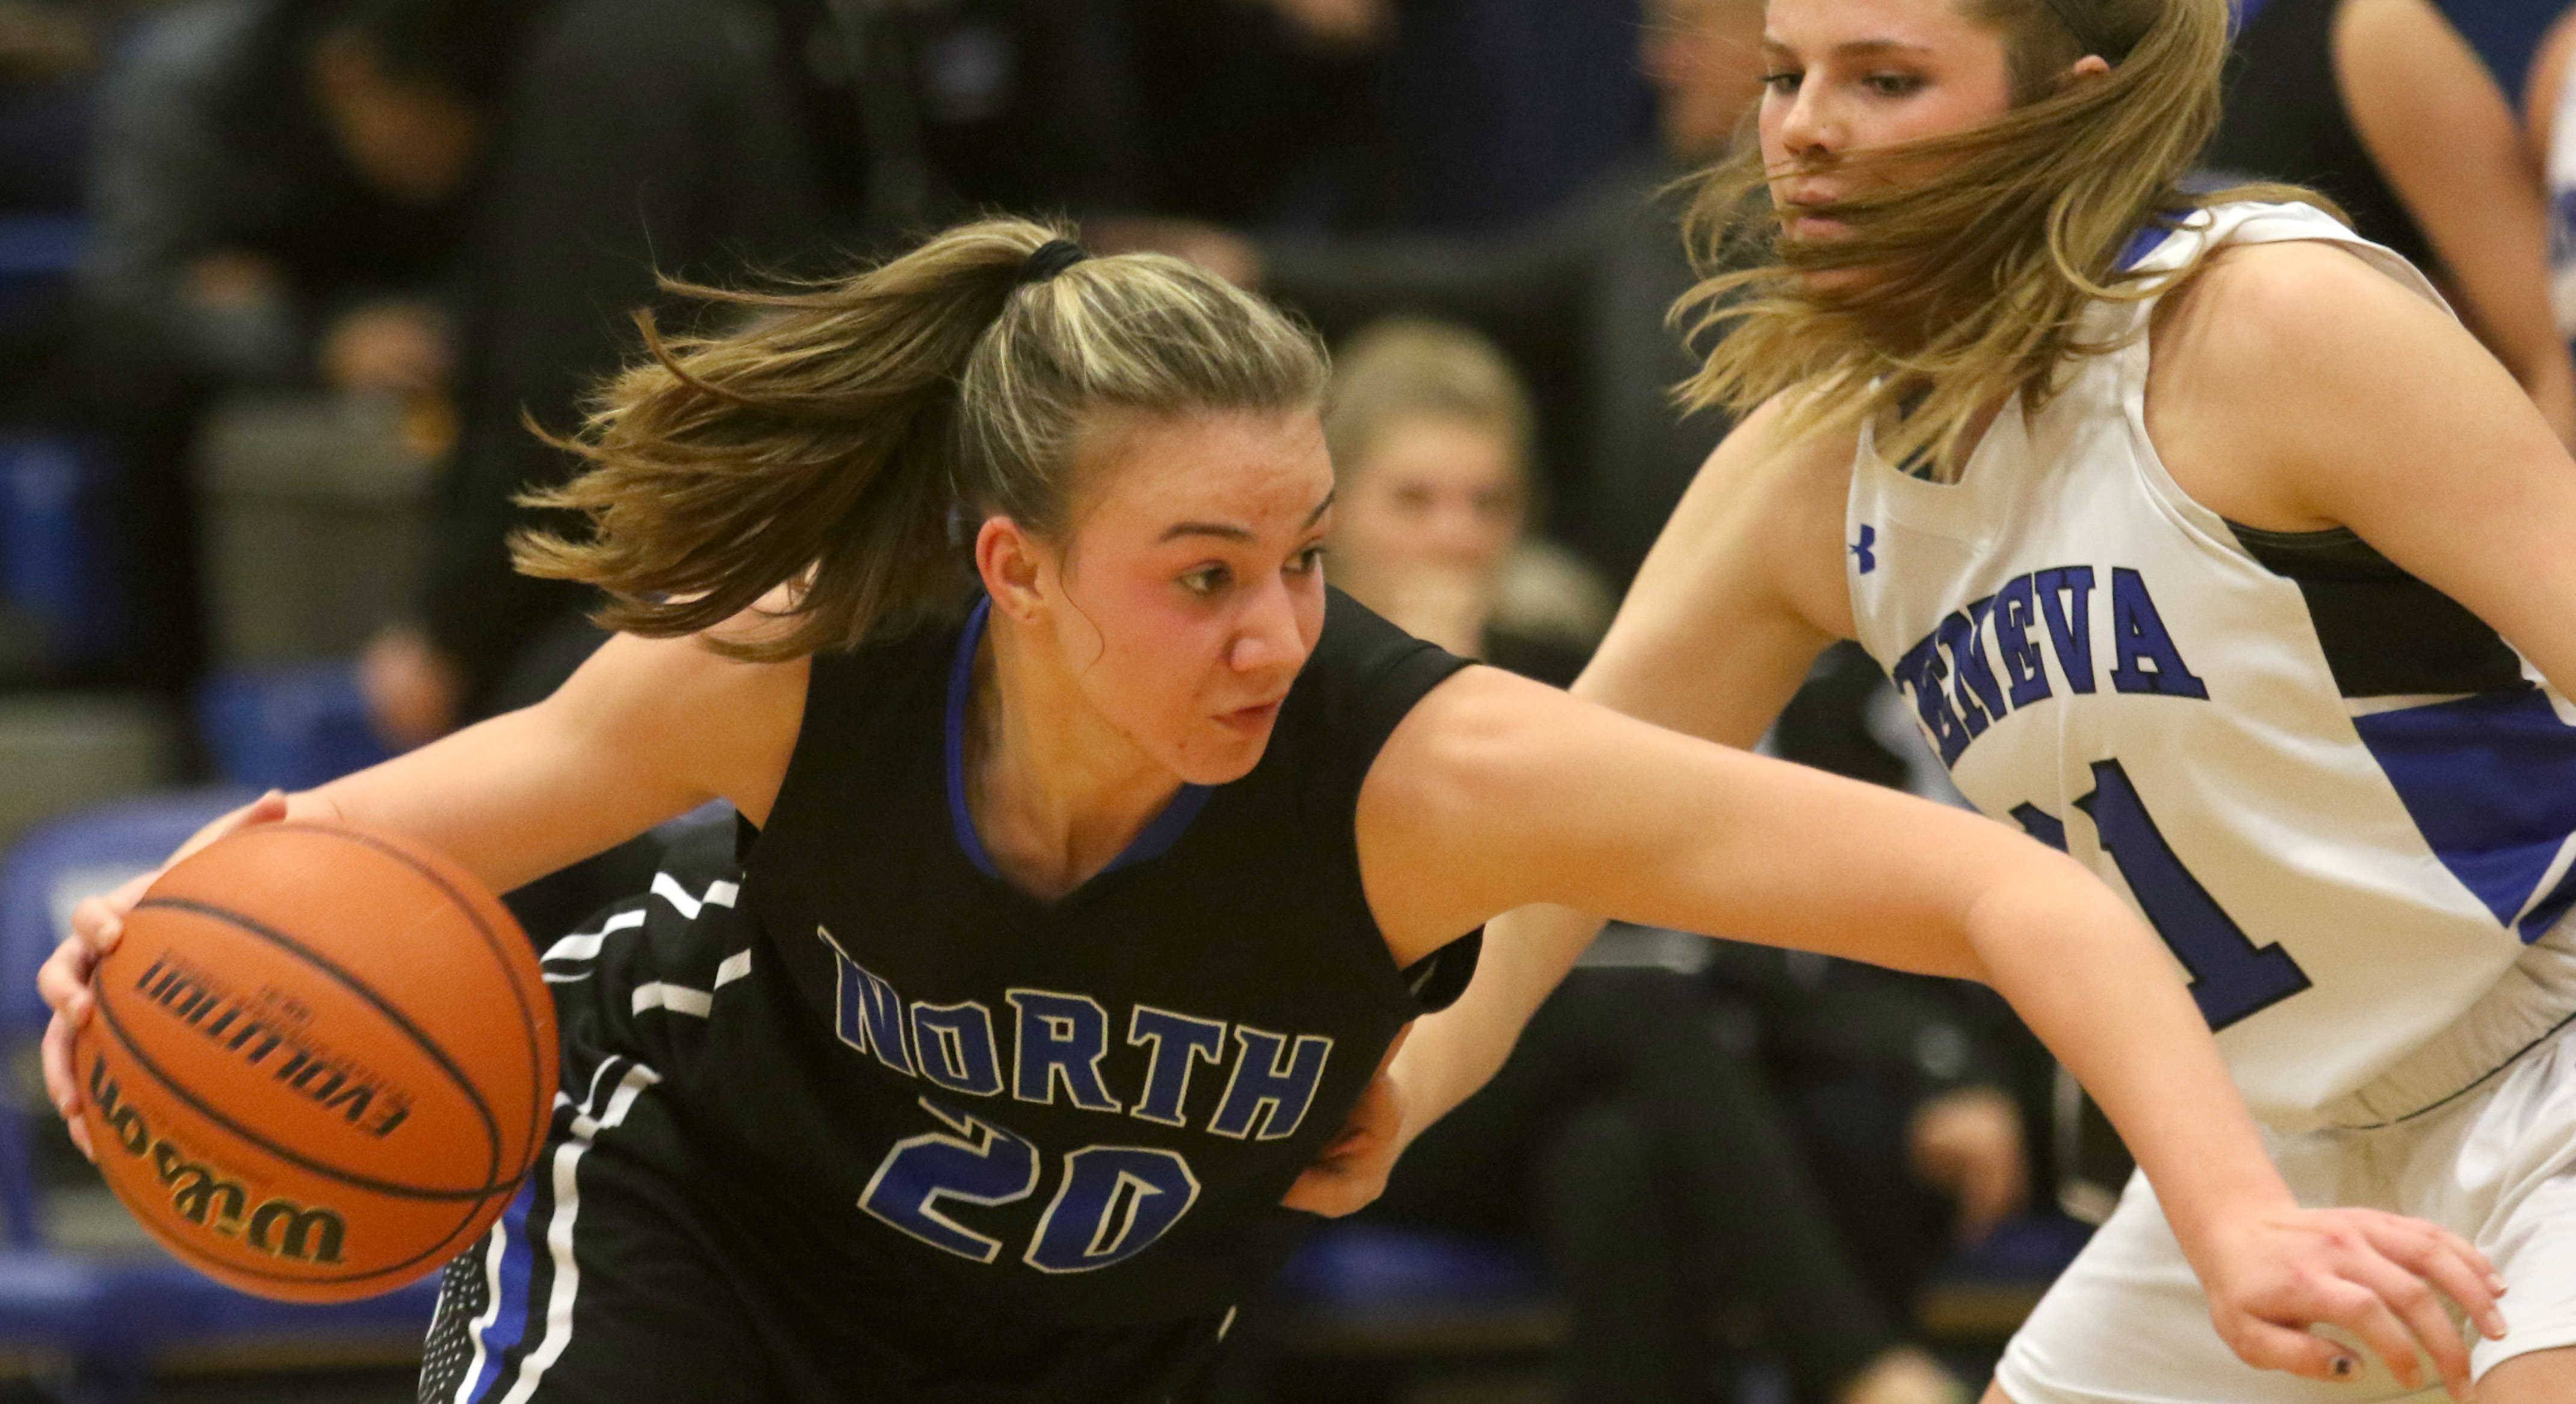 St. Charles North's Elizabeth Olsem tries to find a way past Geneva's Maddy Yelle during varsity girls basketball at Geneva Friday night.